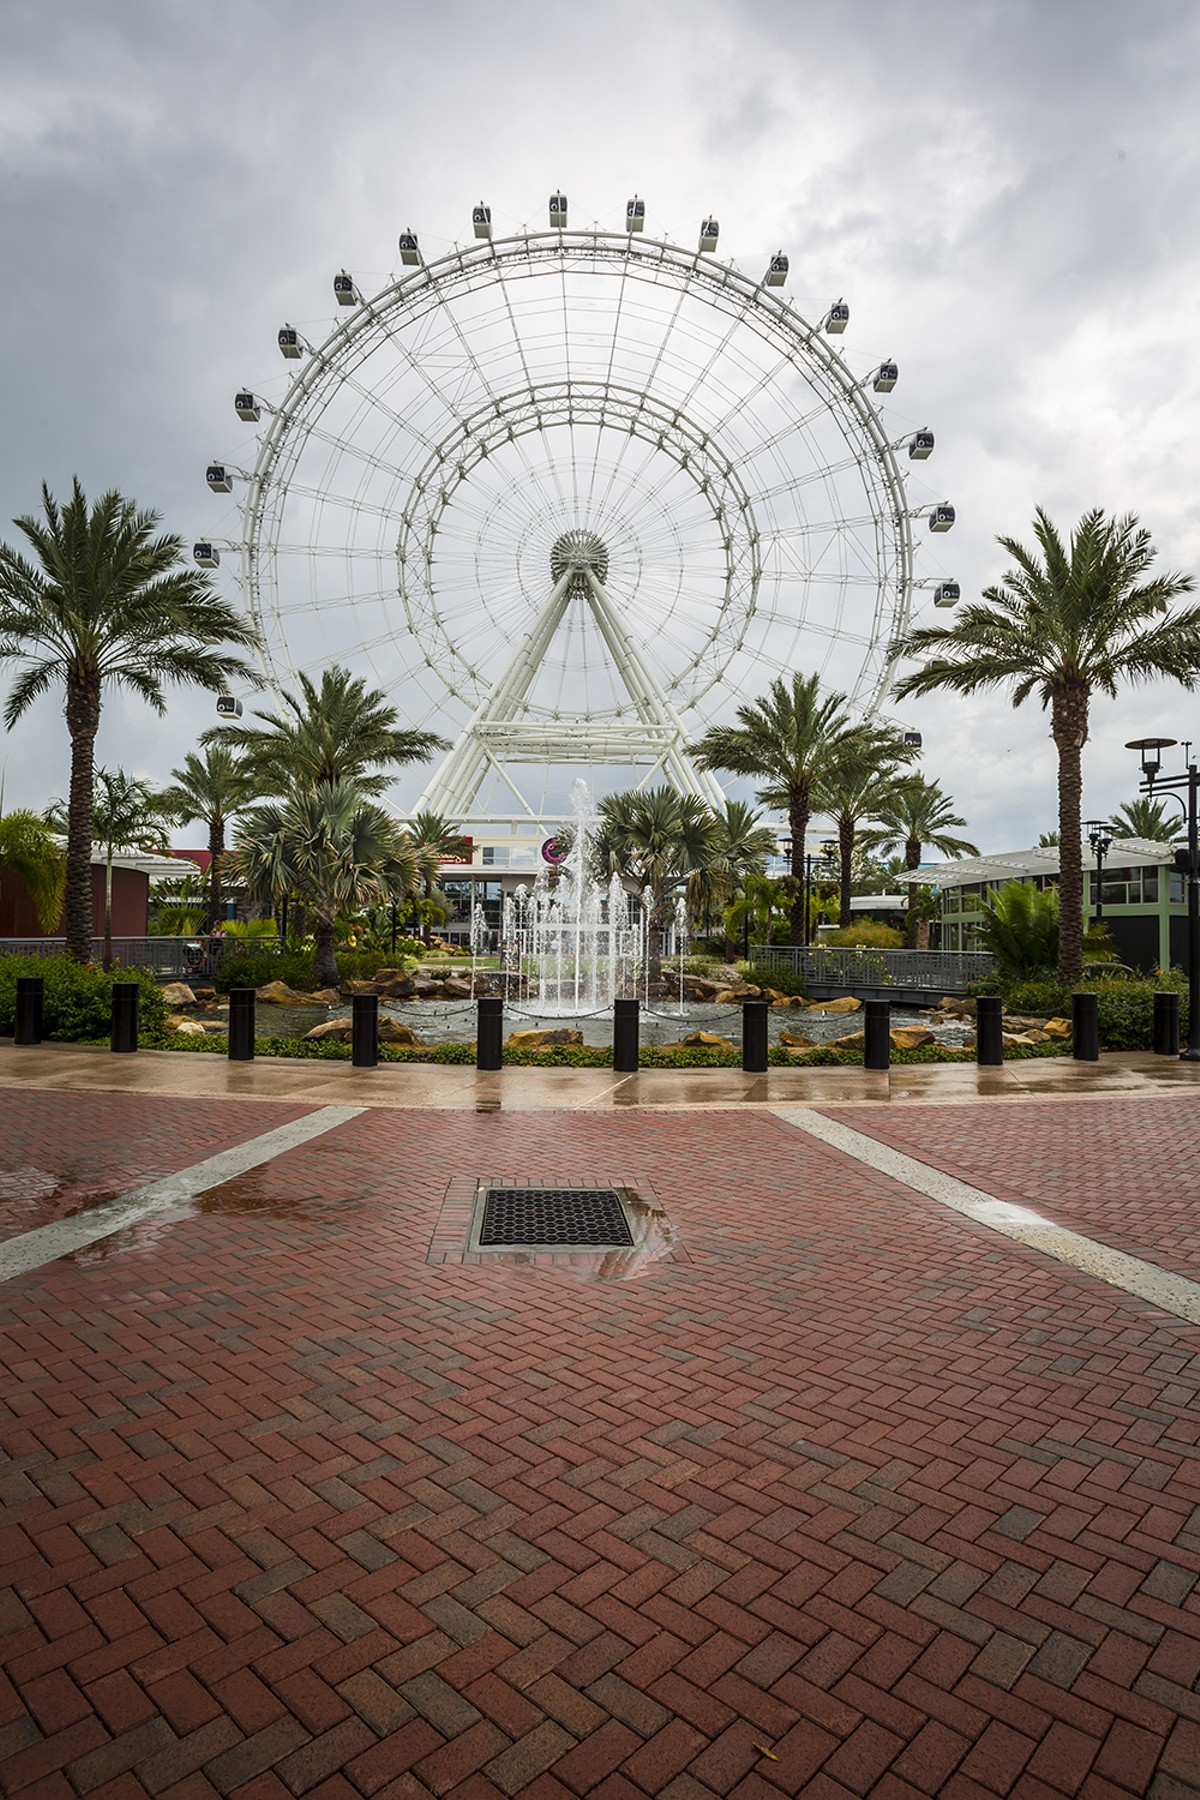 1000w_bartlettimage-orlando_eye-7923.jpg